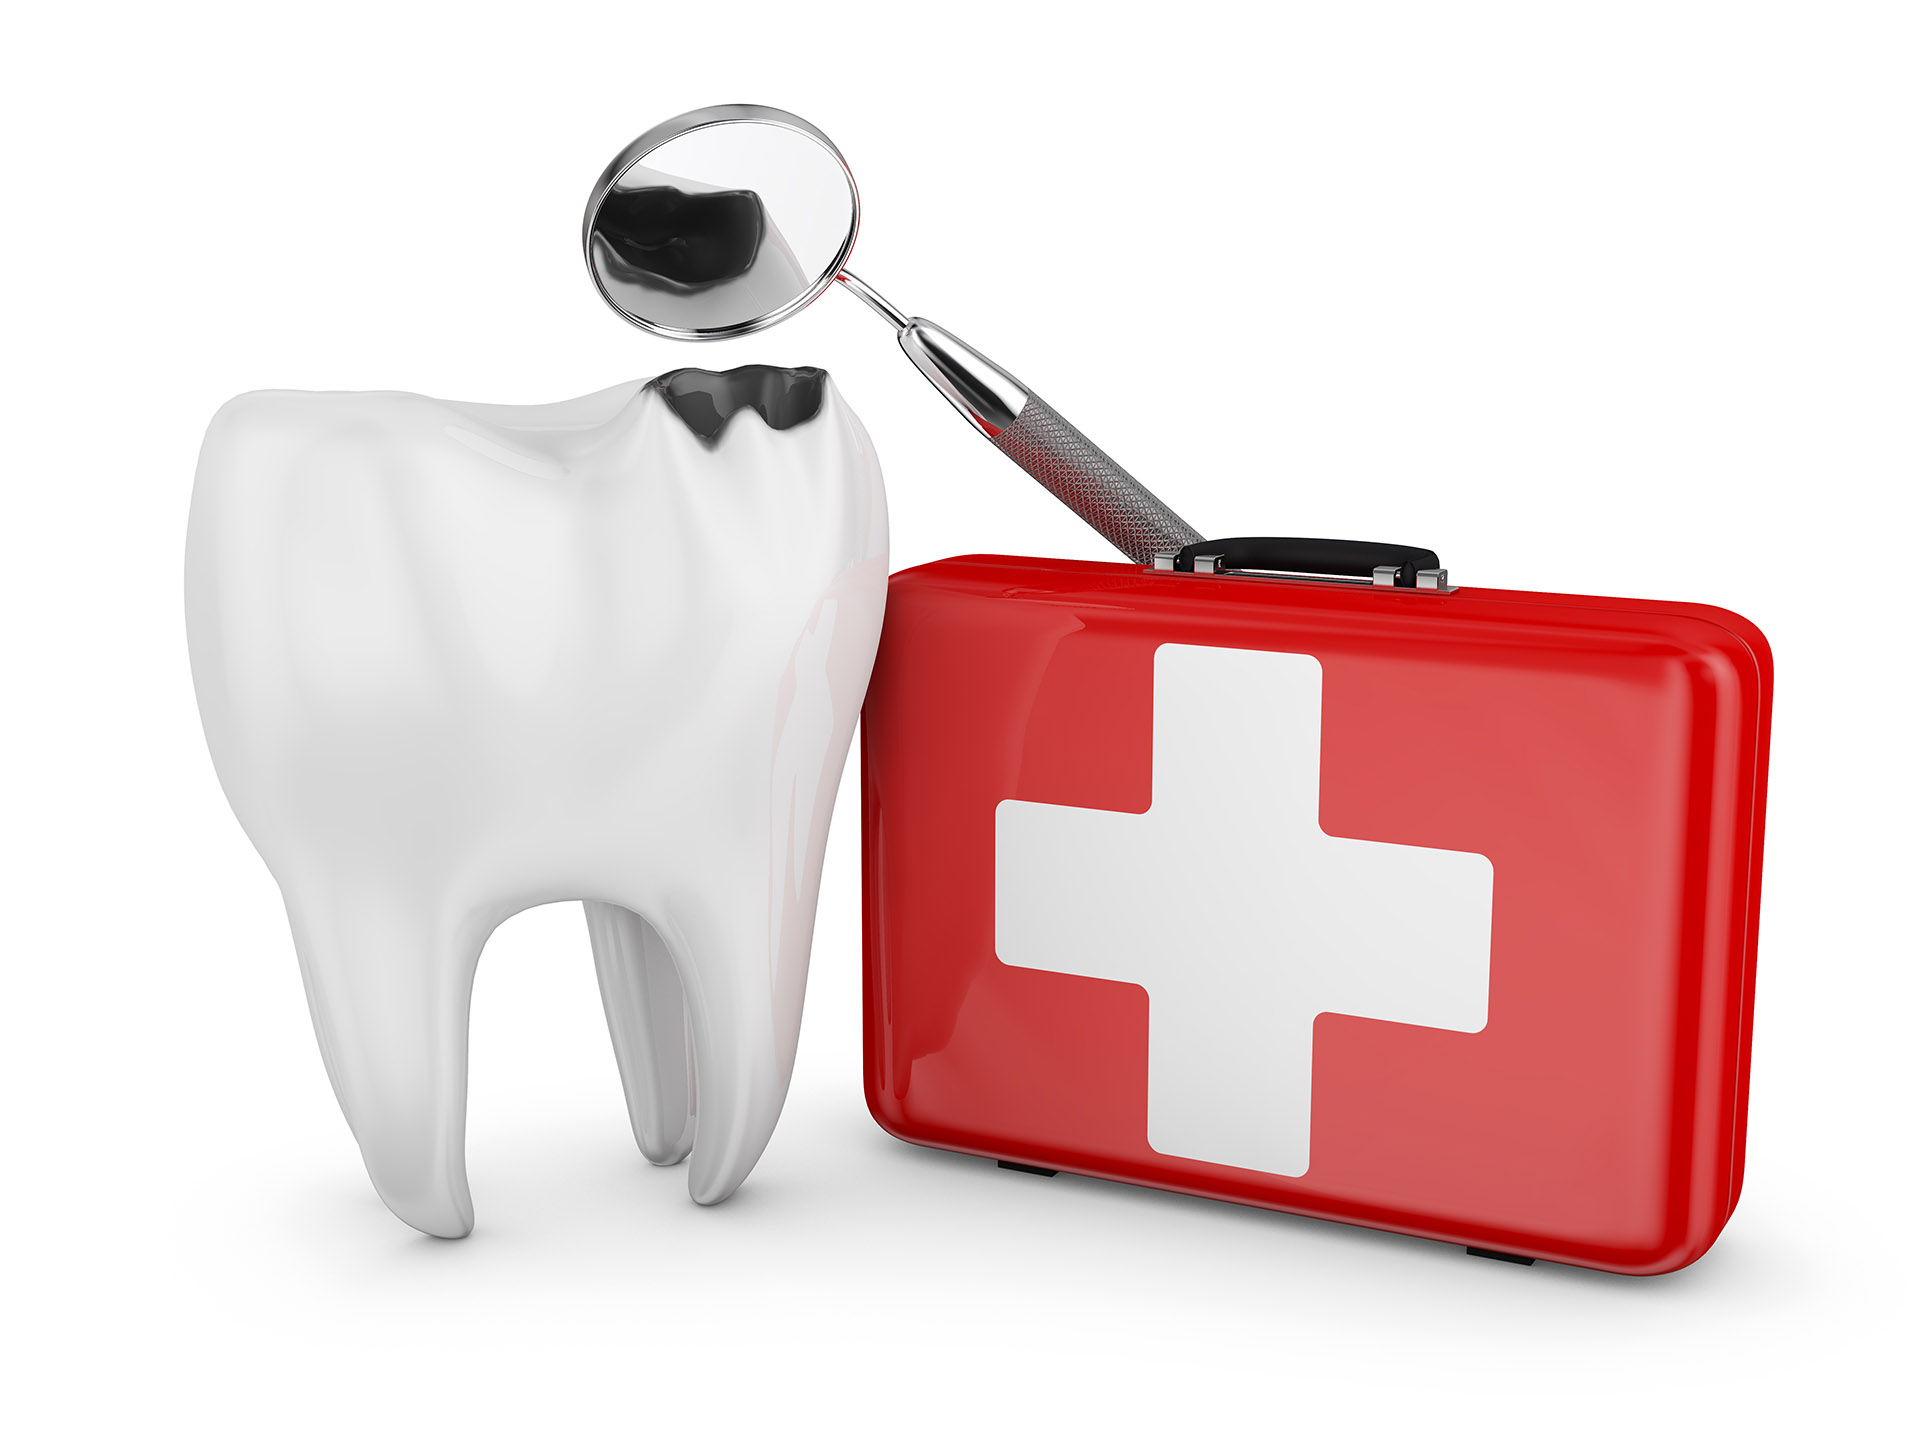 24 hour helpline - For dental emergencies at home or abroad.